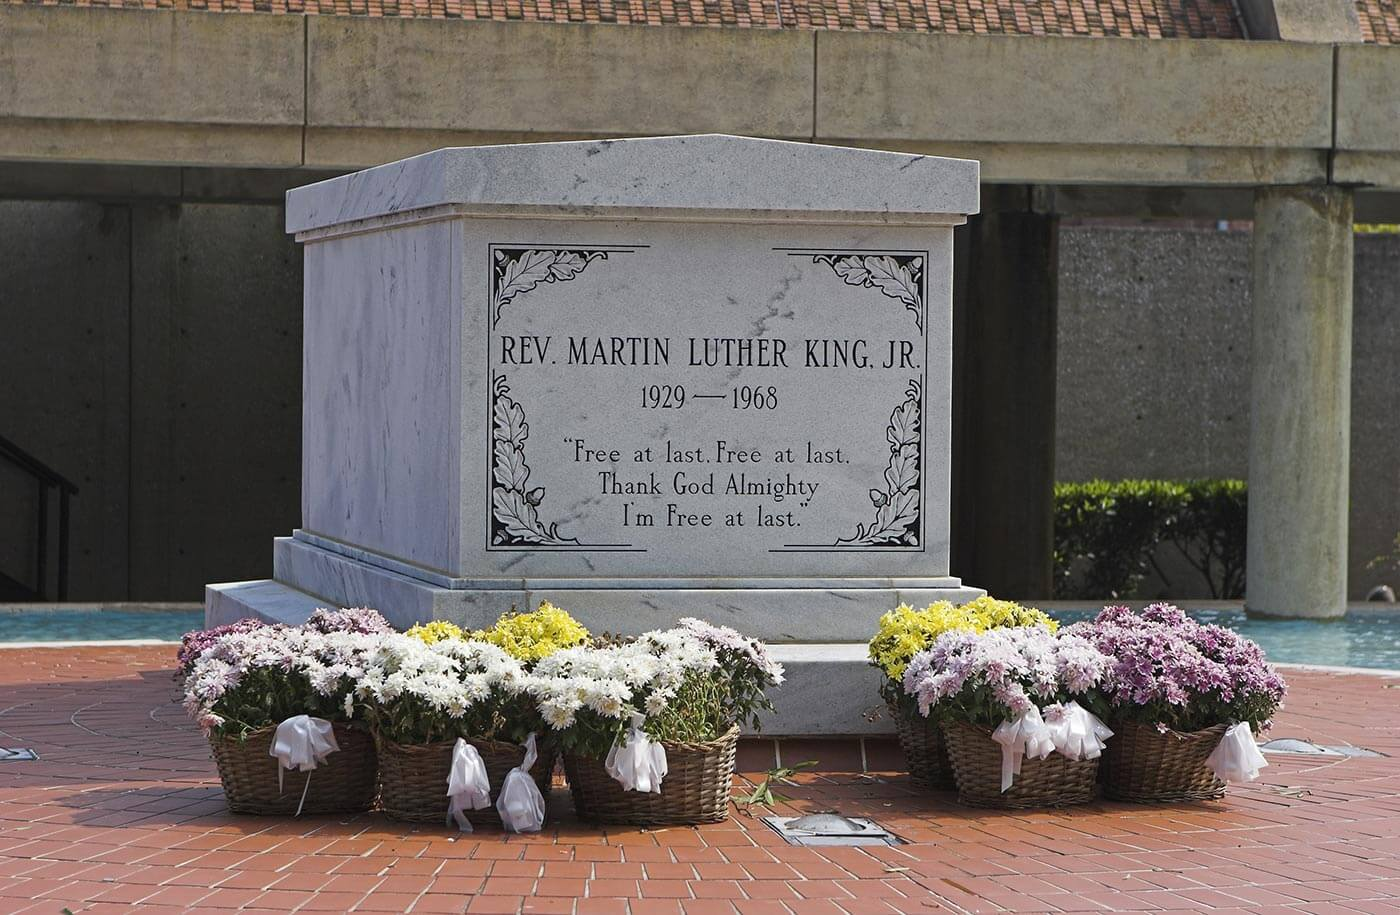 Sitio Histórico Nacional Martin Luther King Jr